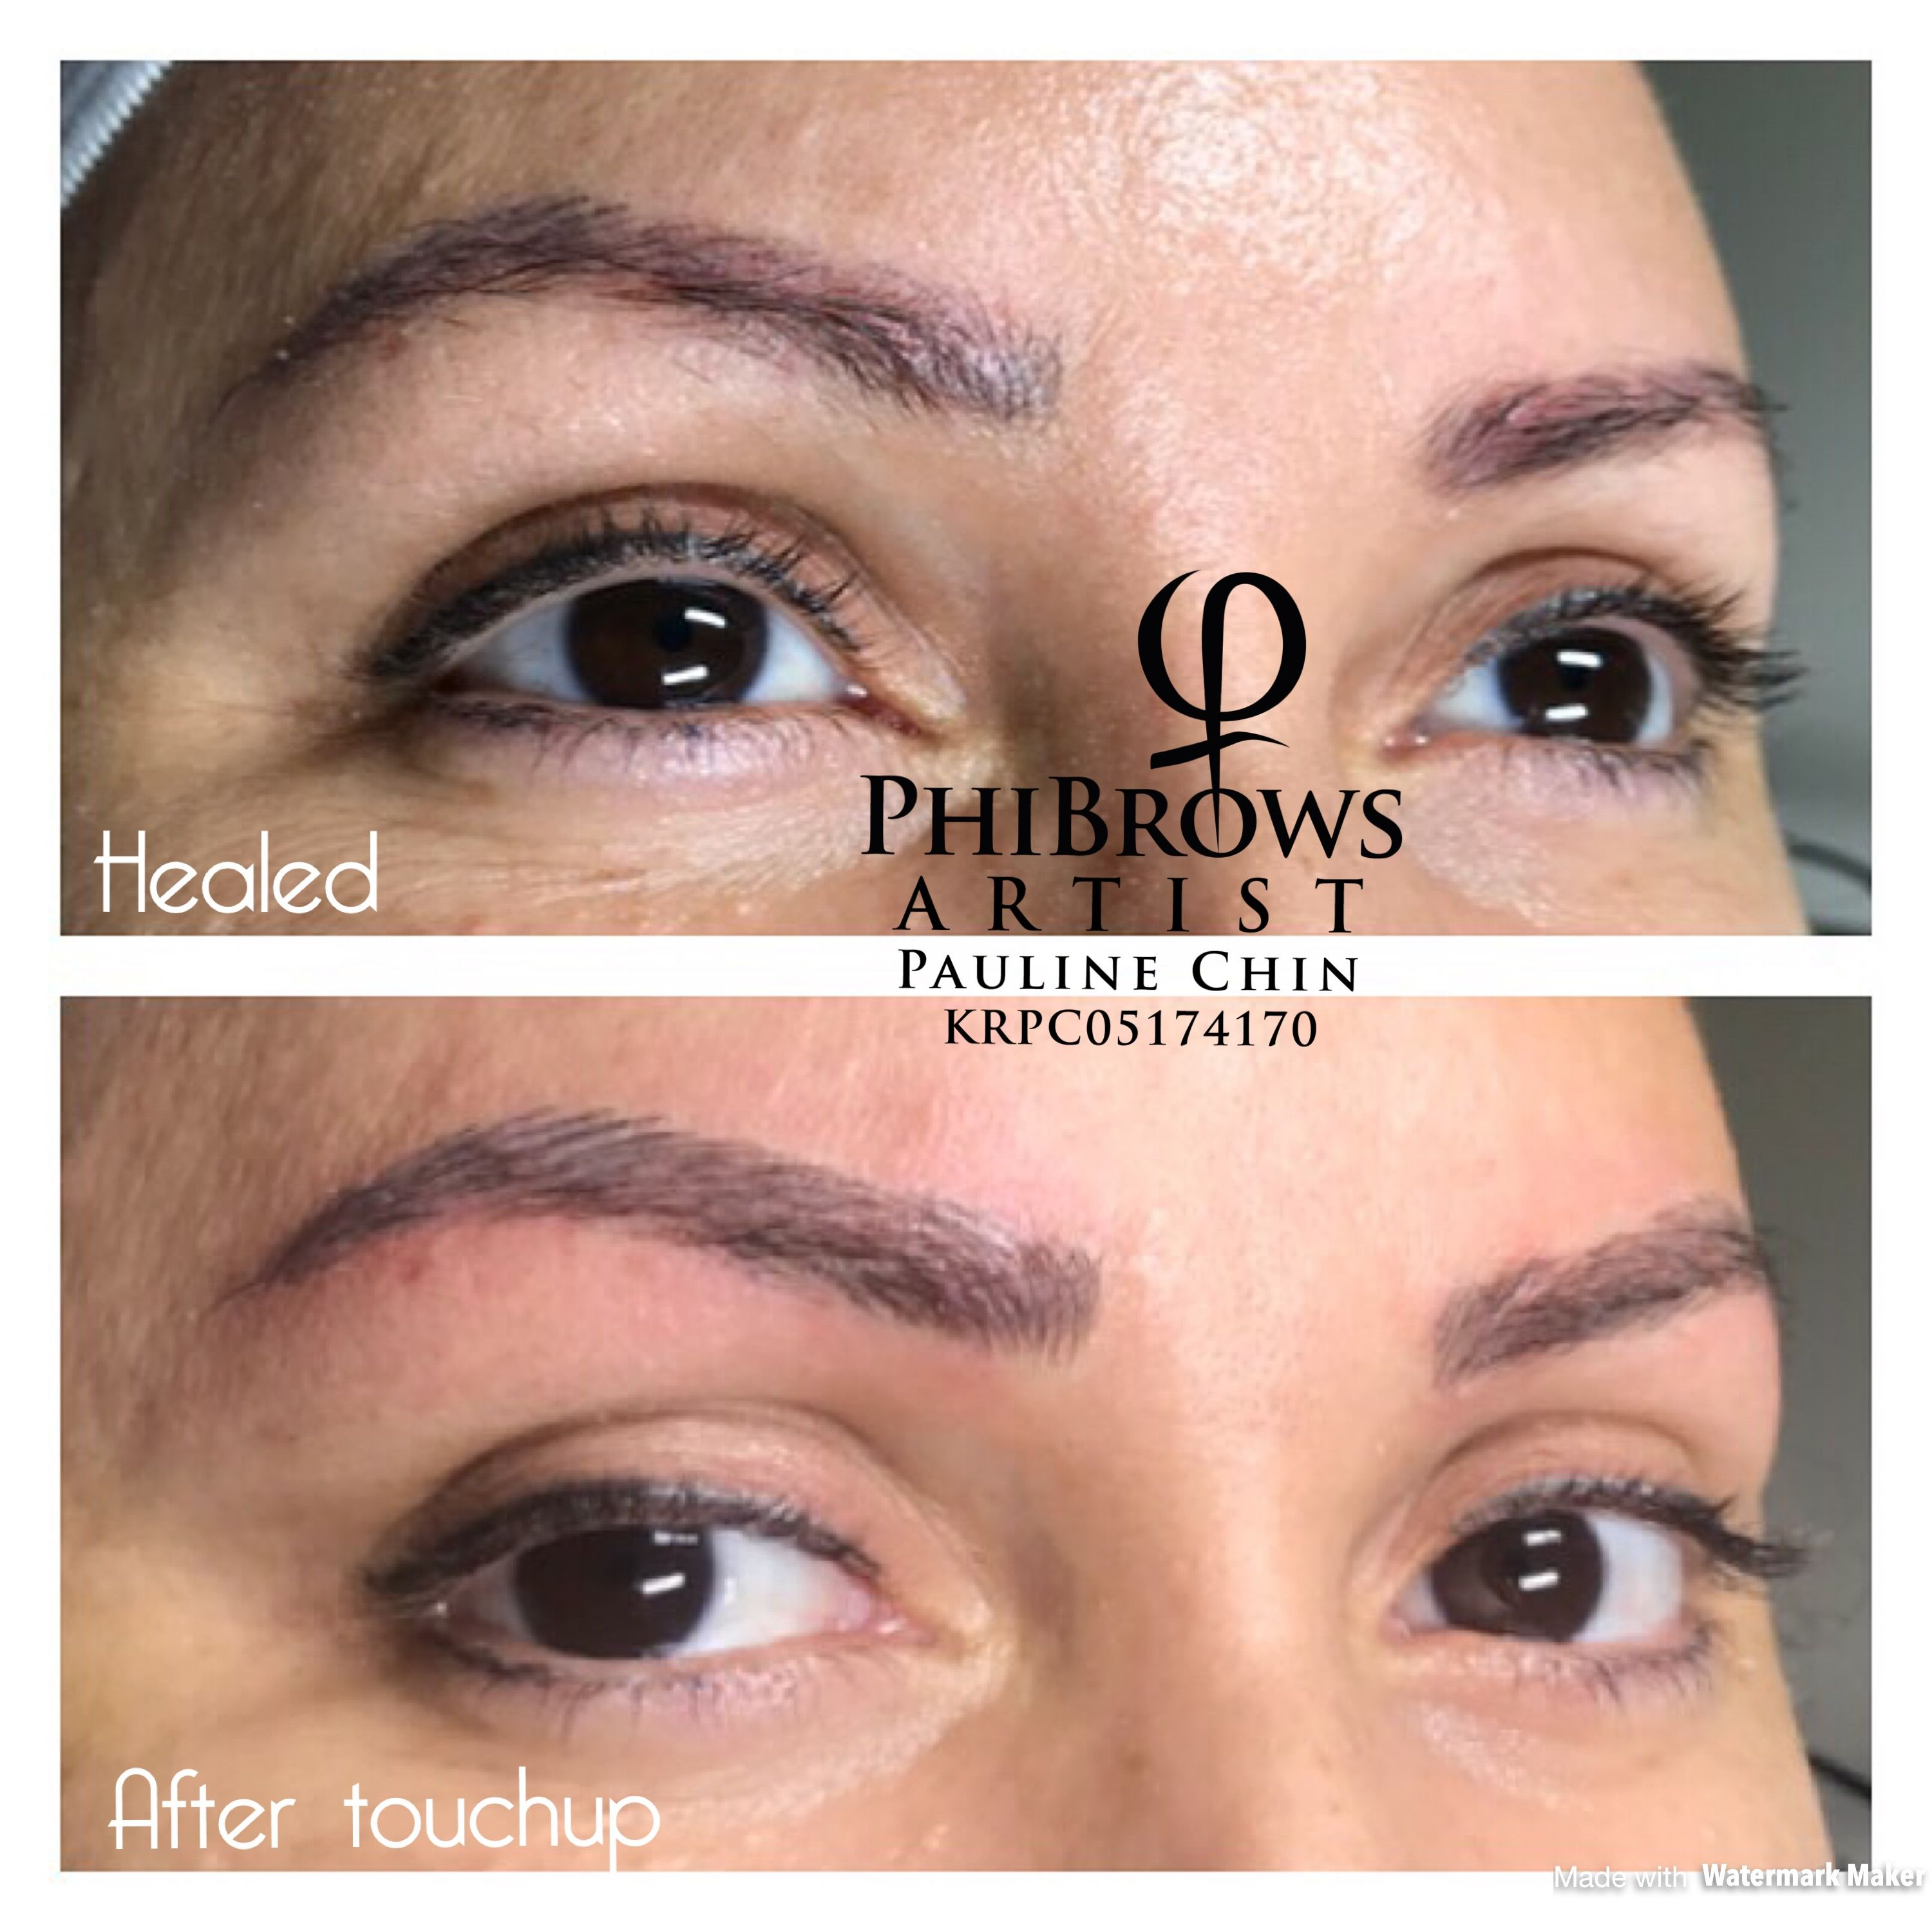 Image by Artistries of Phi on Healed Microblading